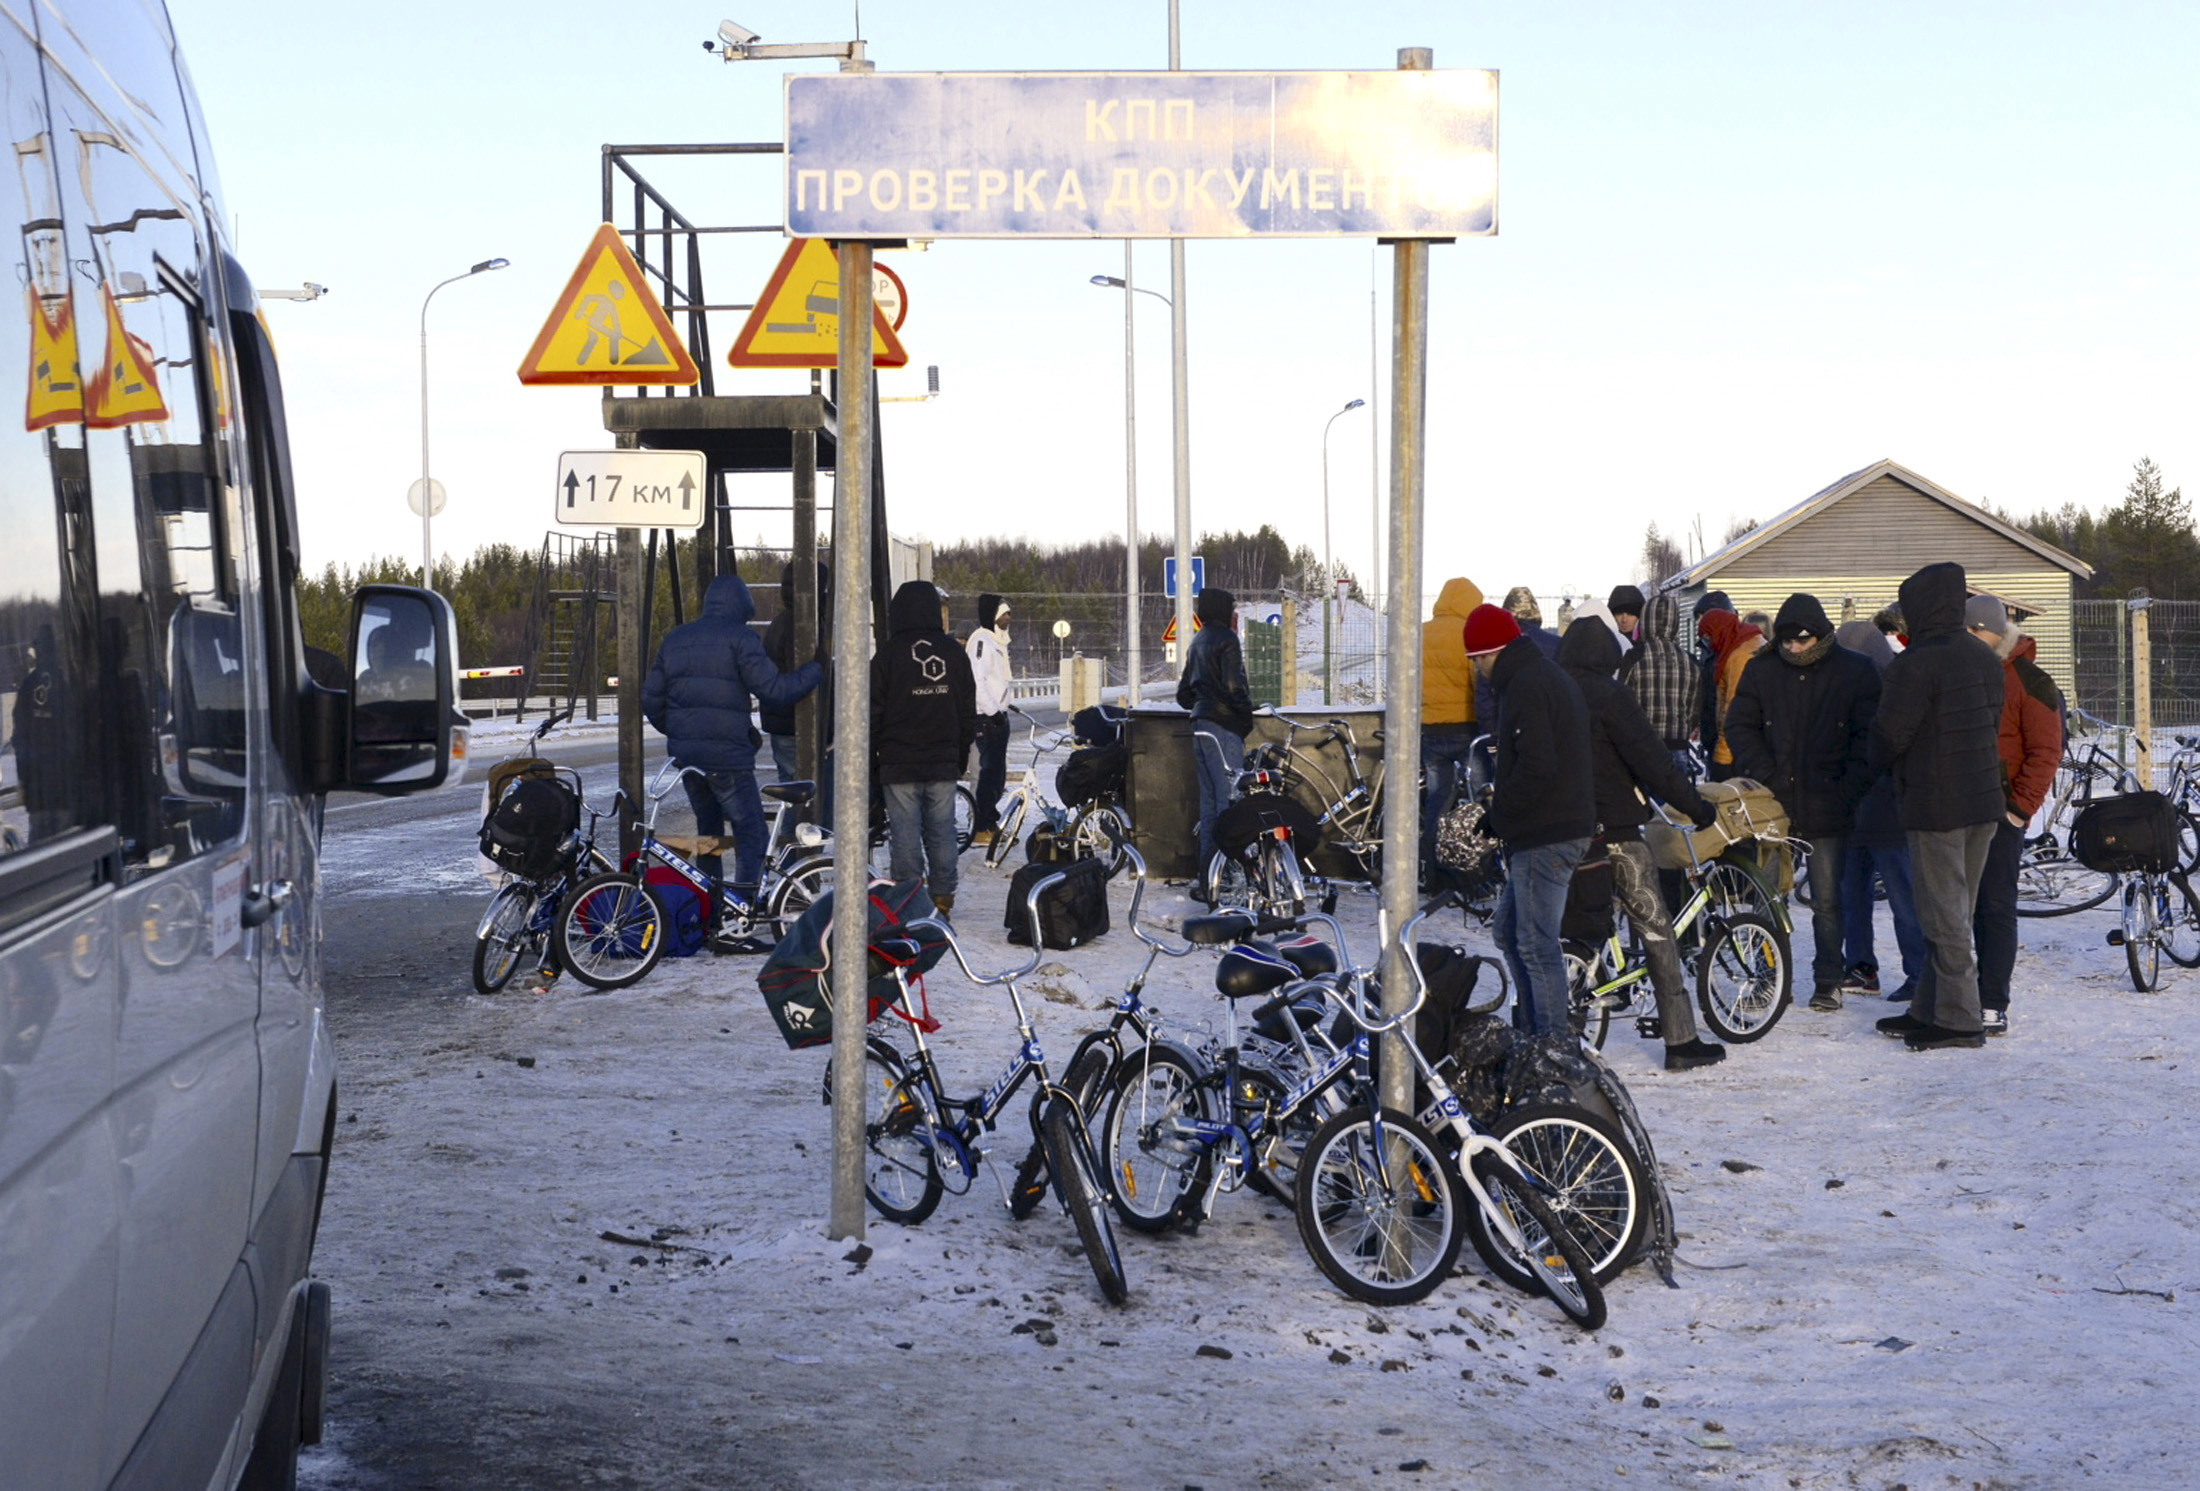 Refugees and migrants gather near a check point on the Russian-Norwegian border outside Nickel (Nikel) settlement in Murmansk region, Russia, on Oct. 30, 2015